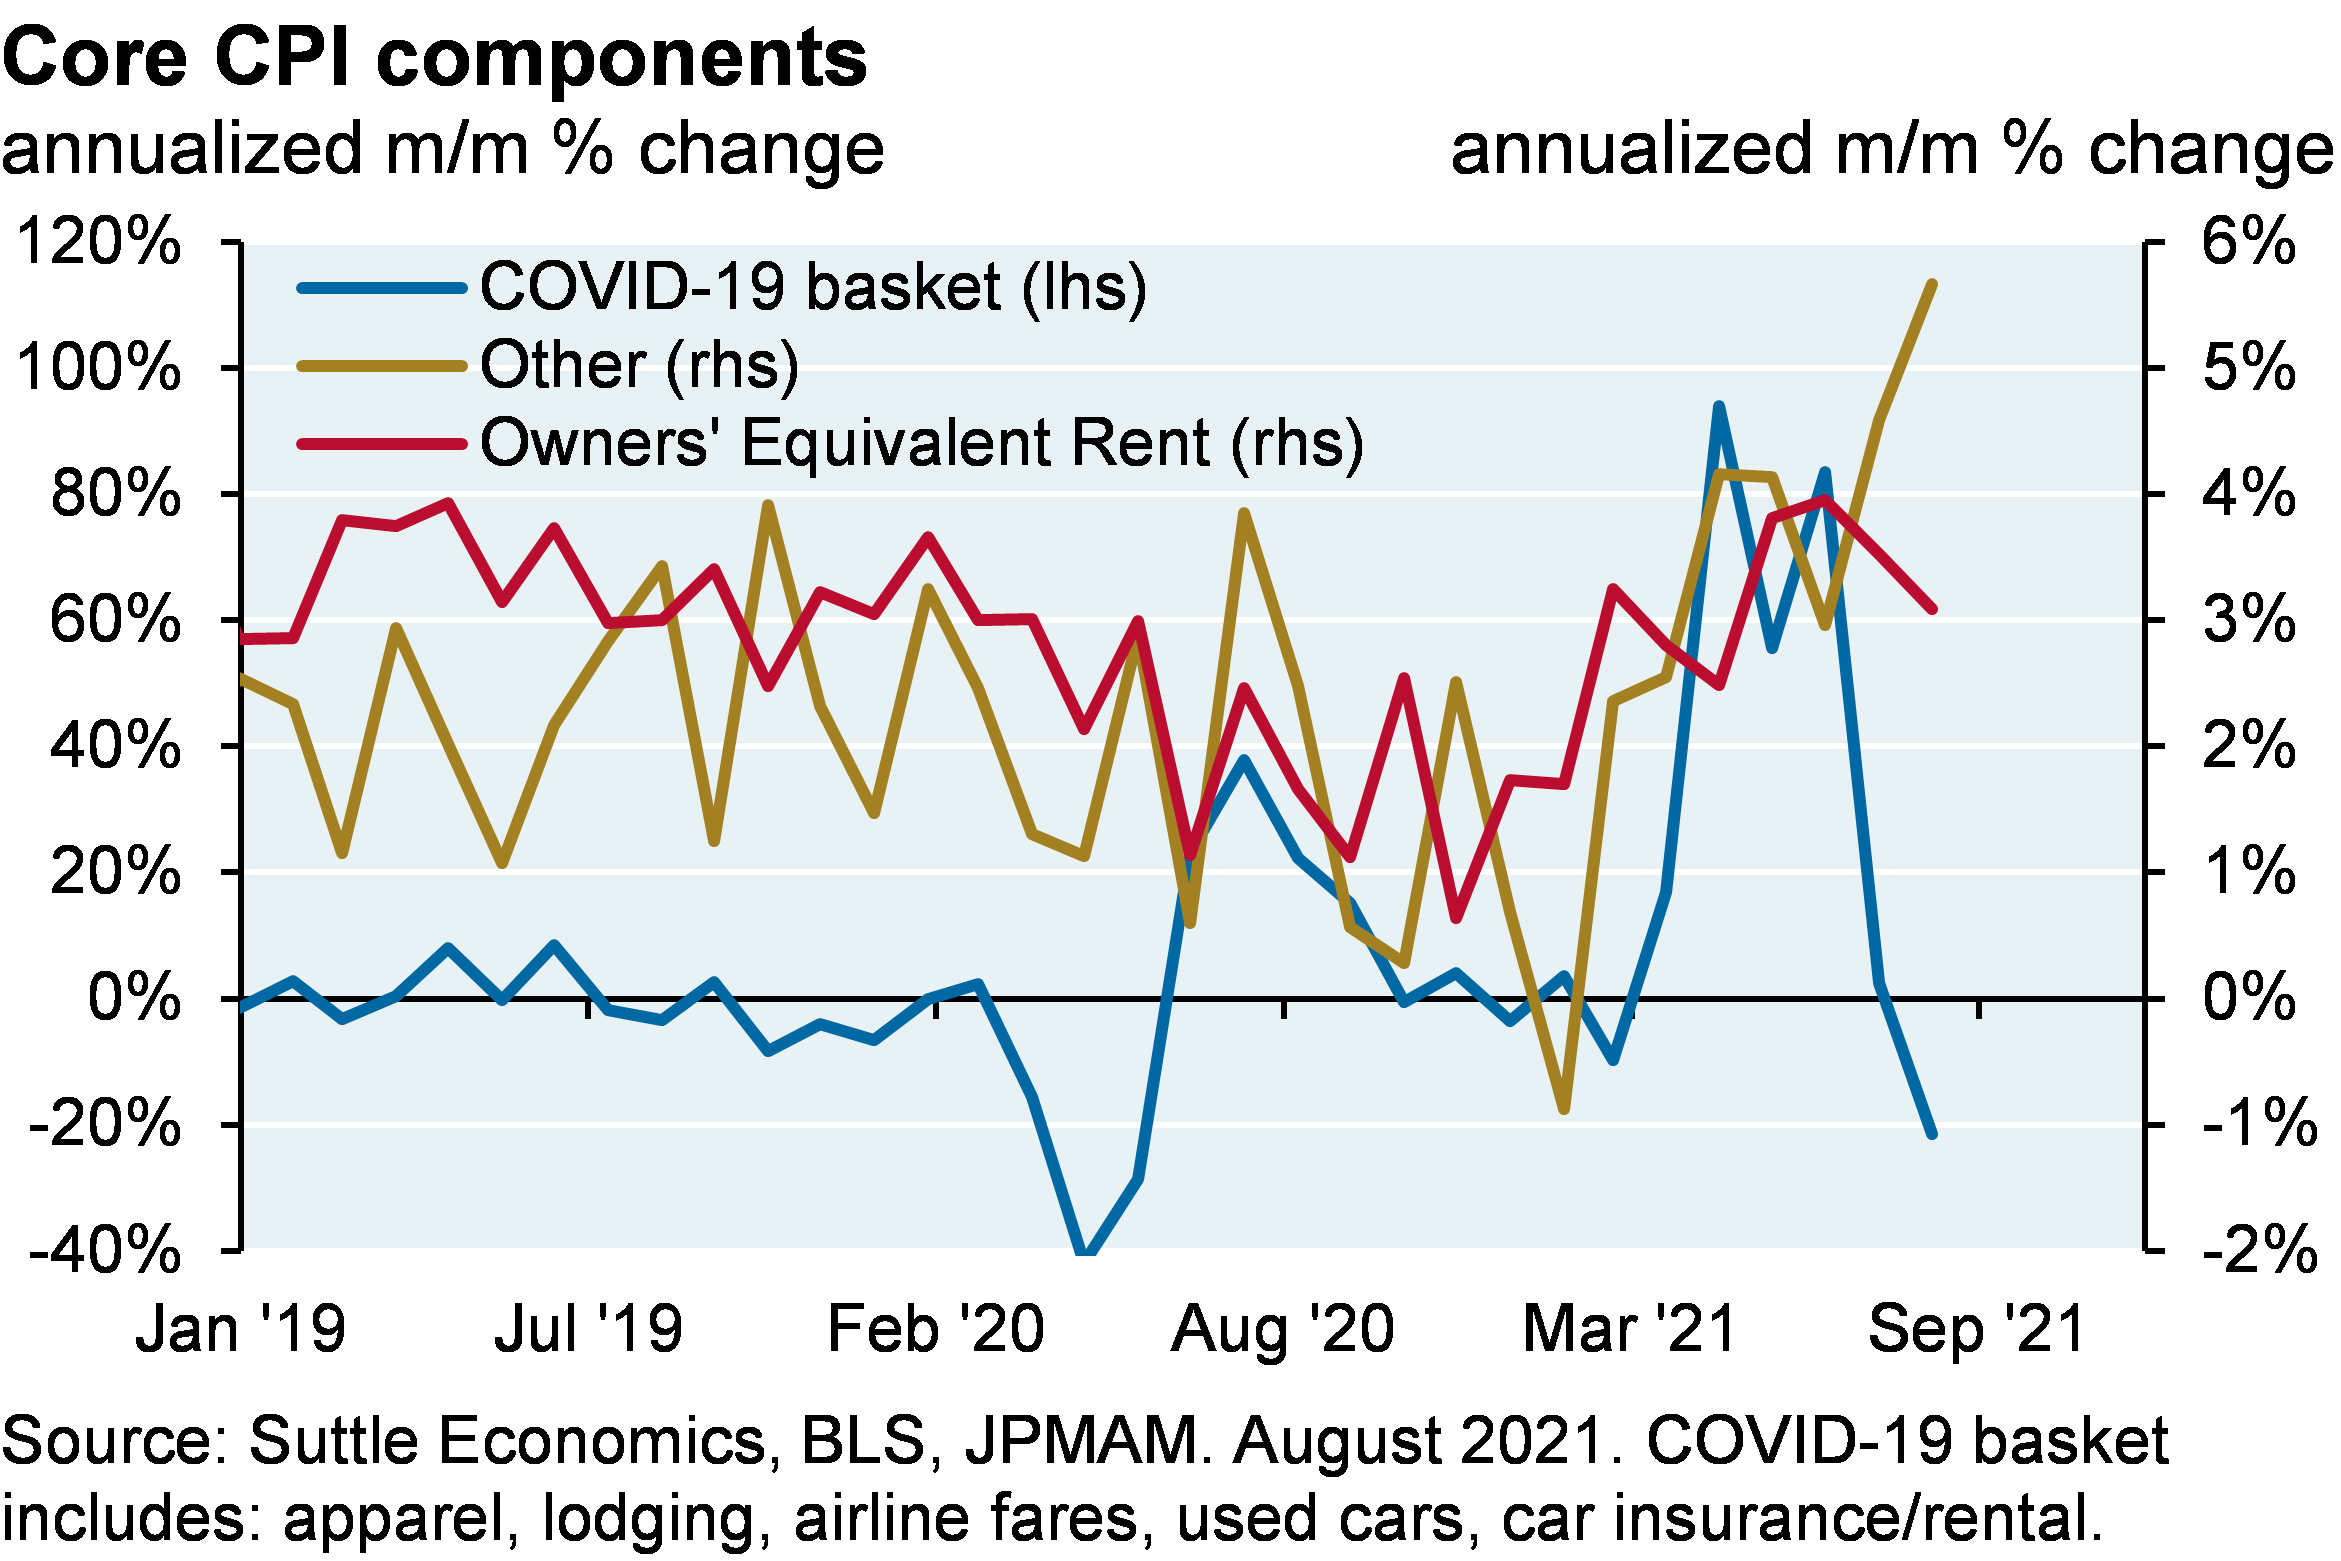 Line chart showing the components of CPI grouped by COVID-19 impacted consumer goods and services, owners' equivalent rent and all other goods and services in the Core Consumer Price Index. The COVID-19 basket includes apparel, lodging, airline fares, used cars, car insurance and car rentals. The August CPI report came in lower than expectations, which was mostly a function of COVID related declines in airfare, lodging and rental cars. These categories will probably bounce back when the Delta wave fades, and the other categories are still rising sharply.